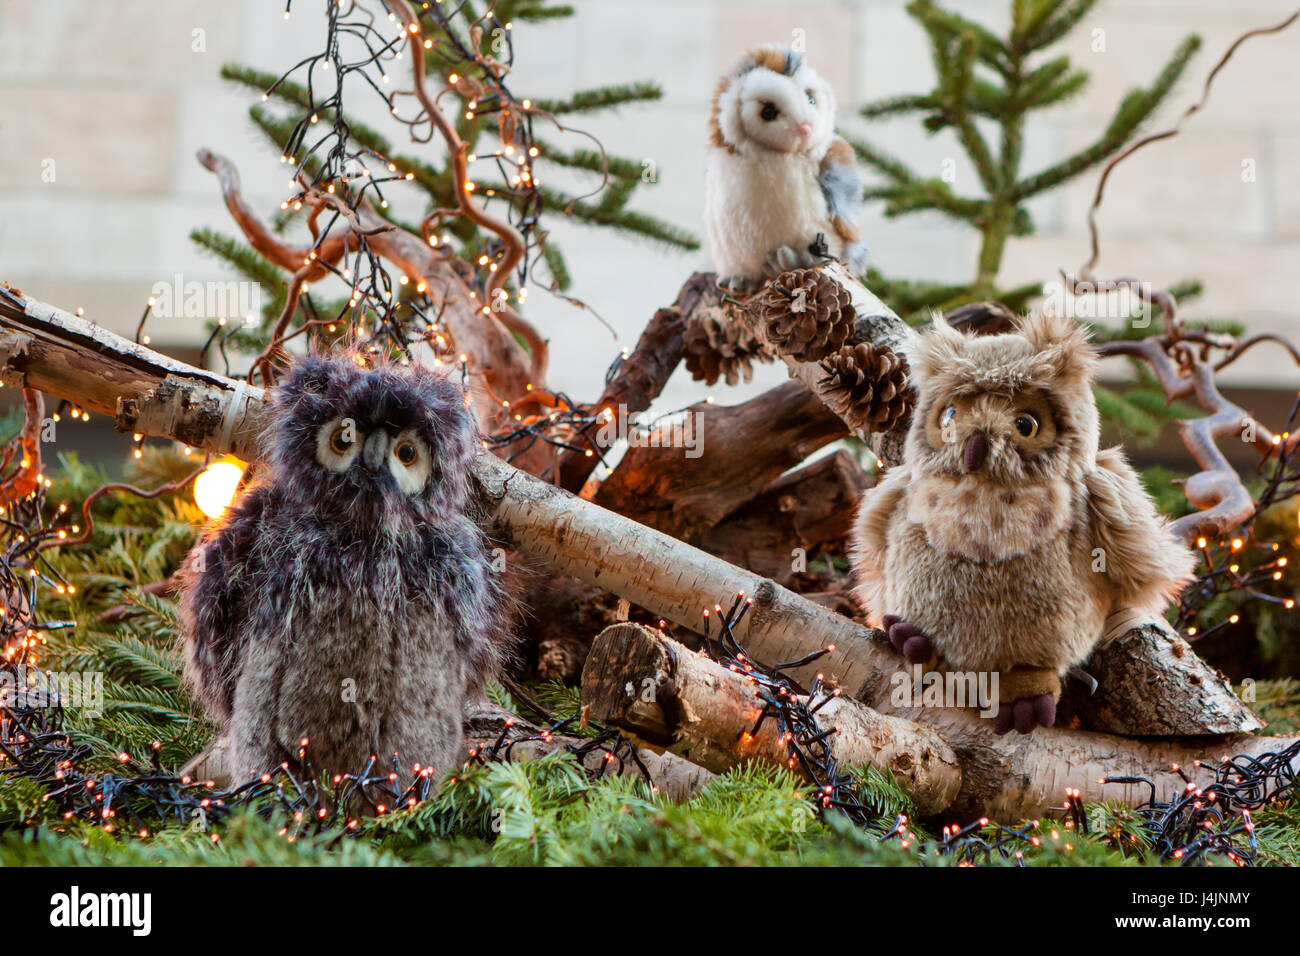 Weihnachtsmarkt Owl.Stuttgart Germany December 3 2016 Stuffed Plush Owls And Pine